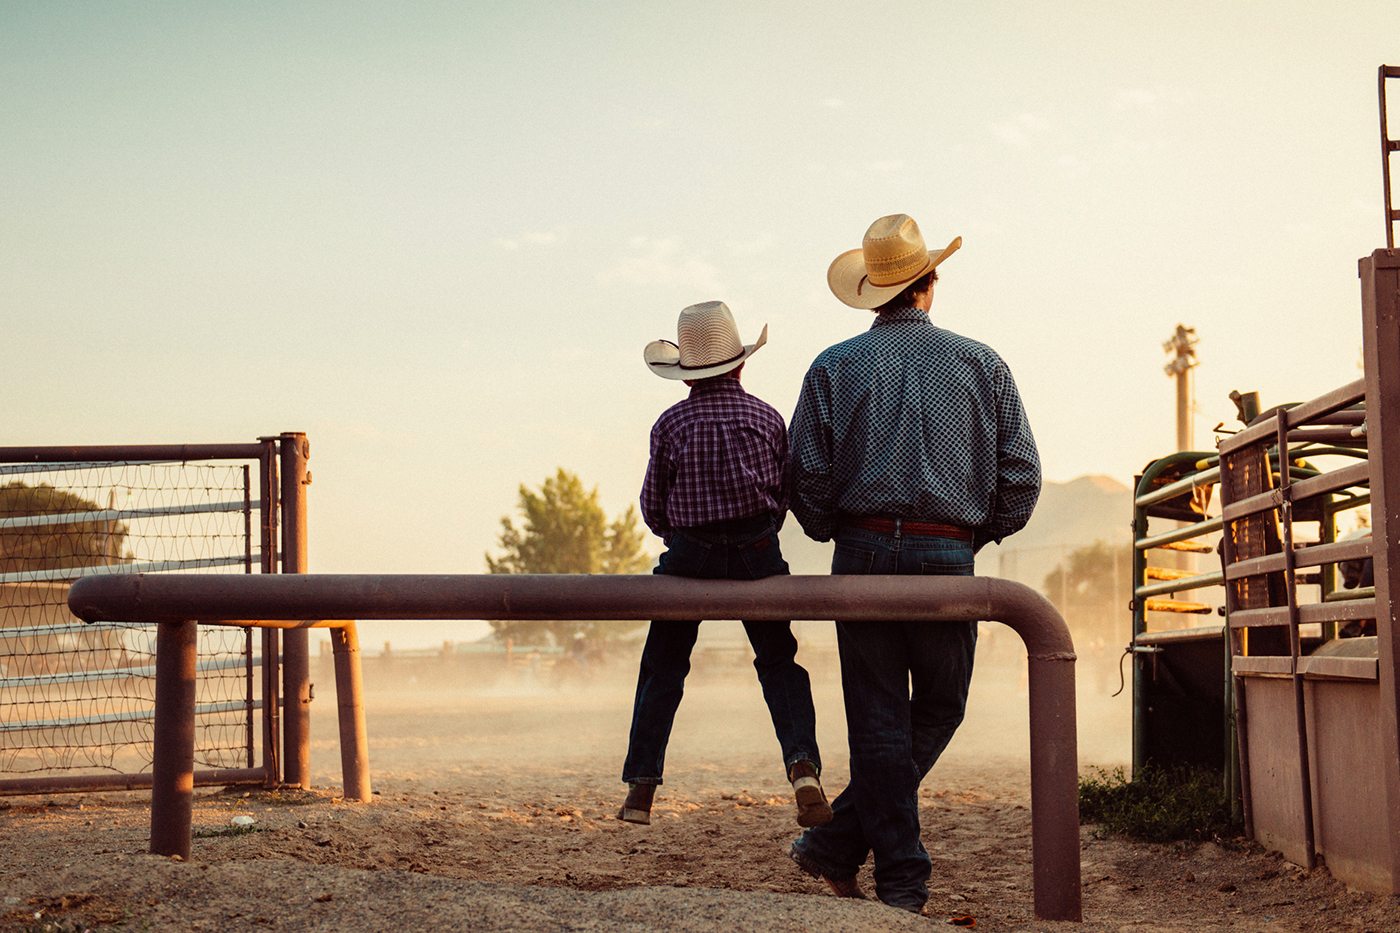 cowboy father and son watching rodeo